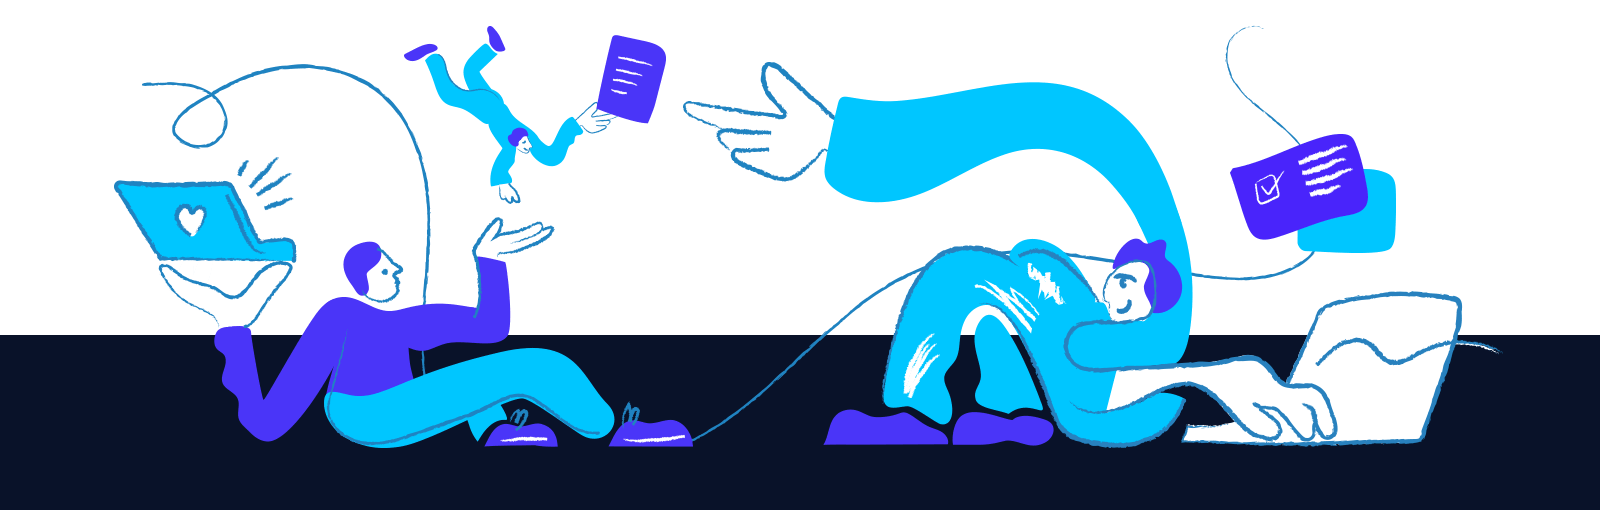 Illustration of two people working on laptops, symbolizing remote collaboration.